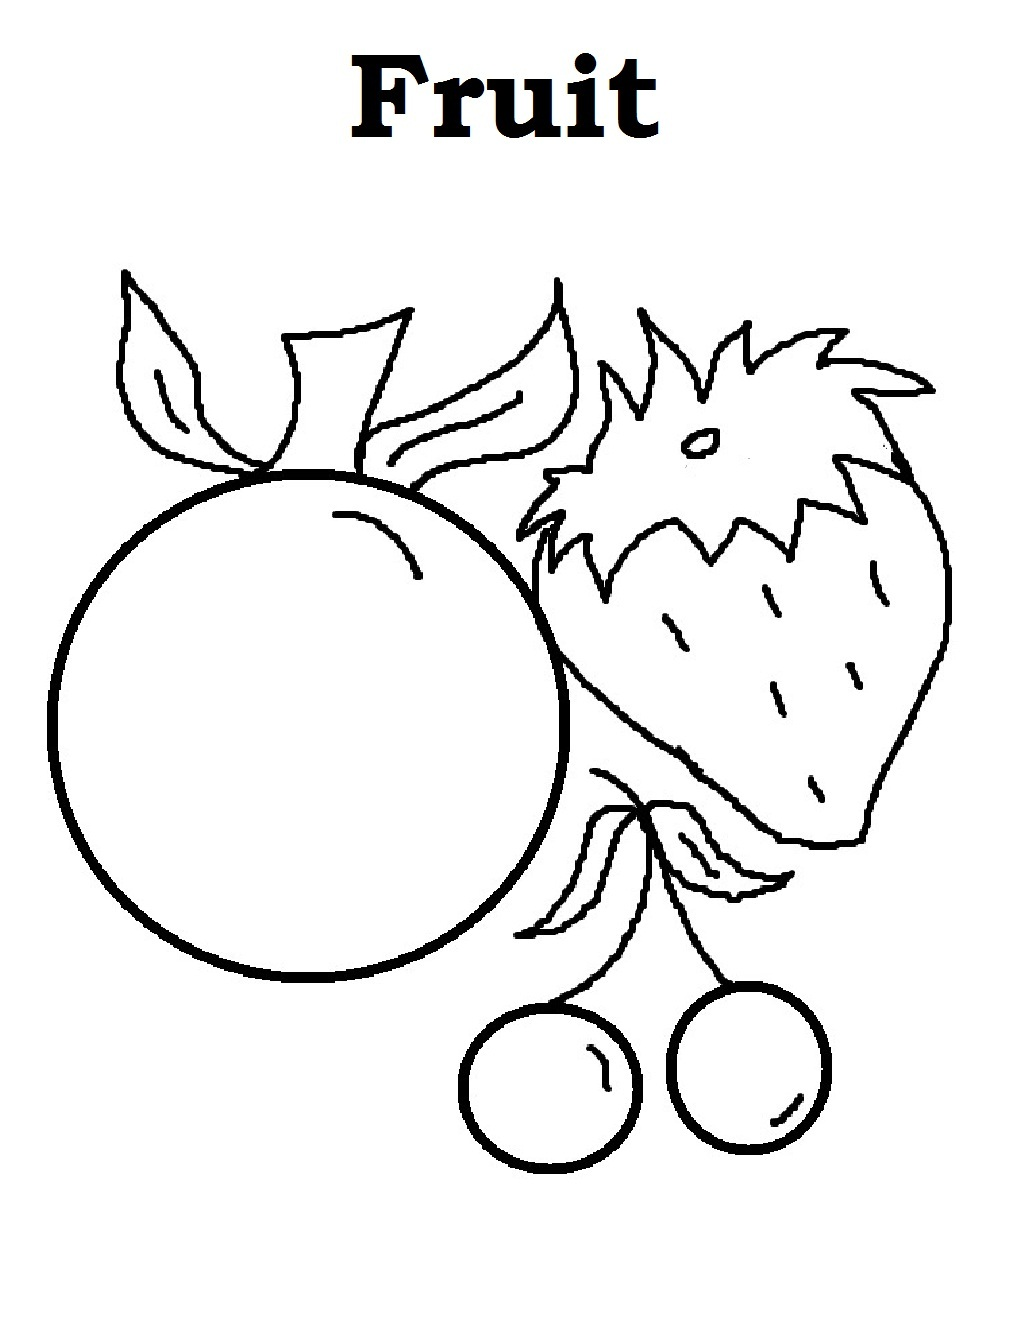 fruit coloring sheet fruit coloring pages for childrens printable for free fruit sheet coloring